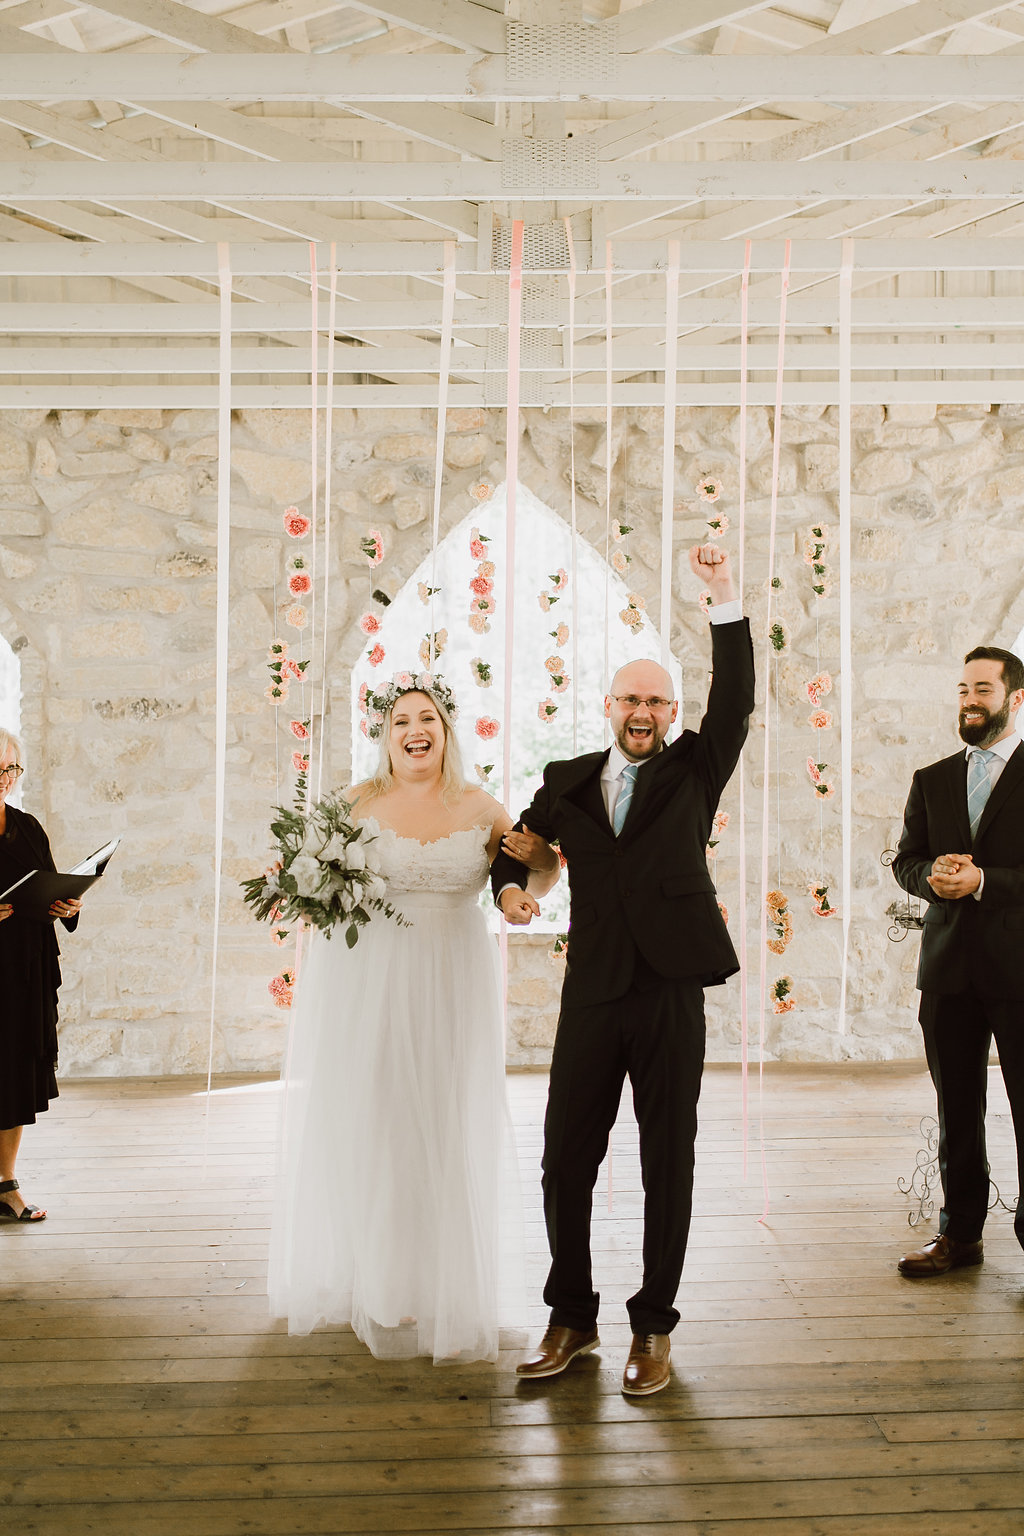 Hanging Ribbon and Flower Backdrop - Whimsical Wedding Flower Inspiration